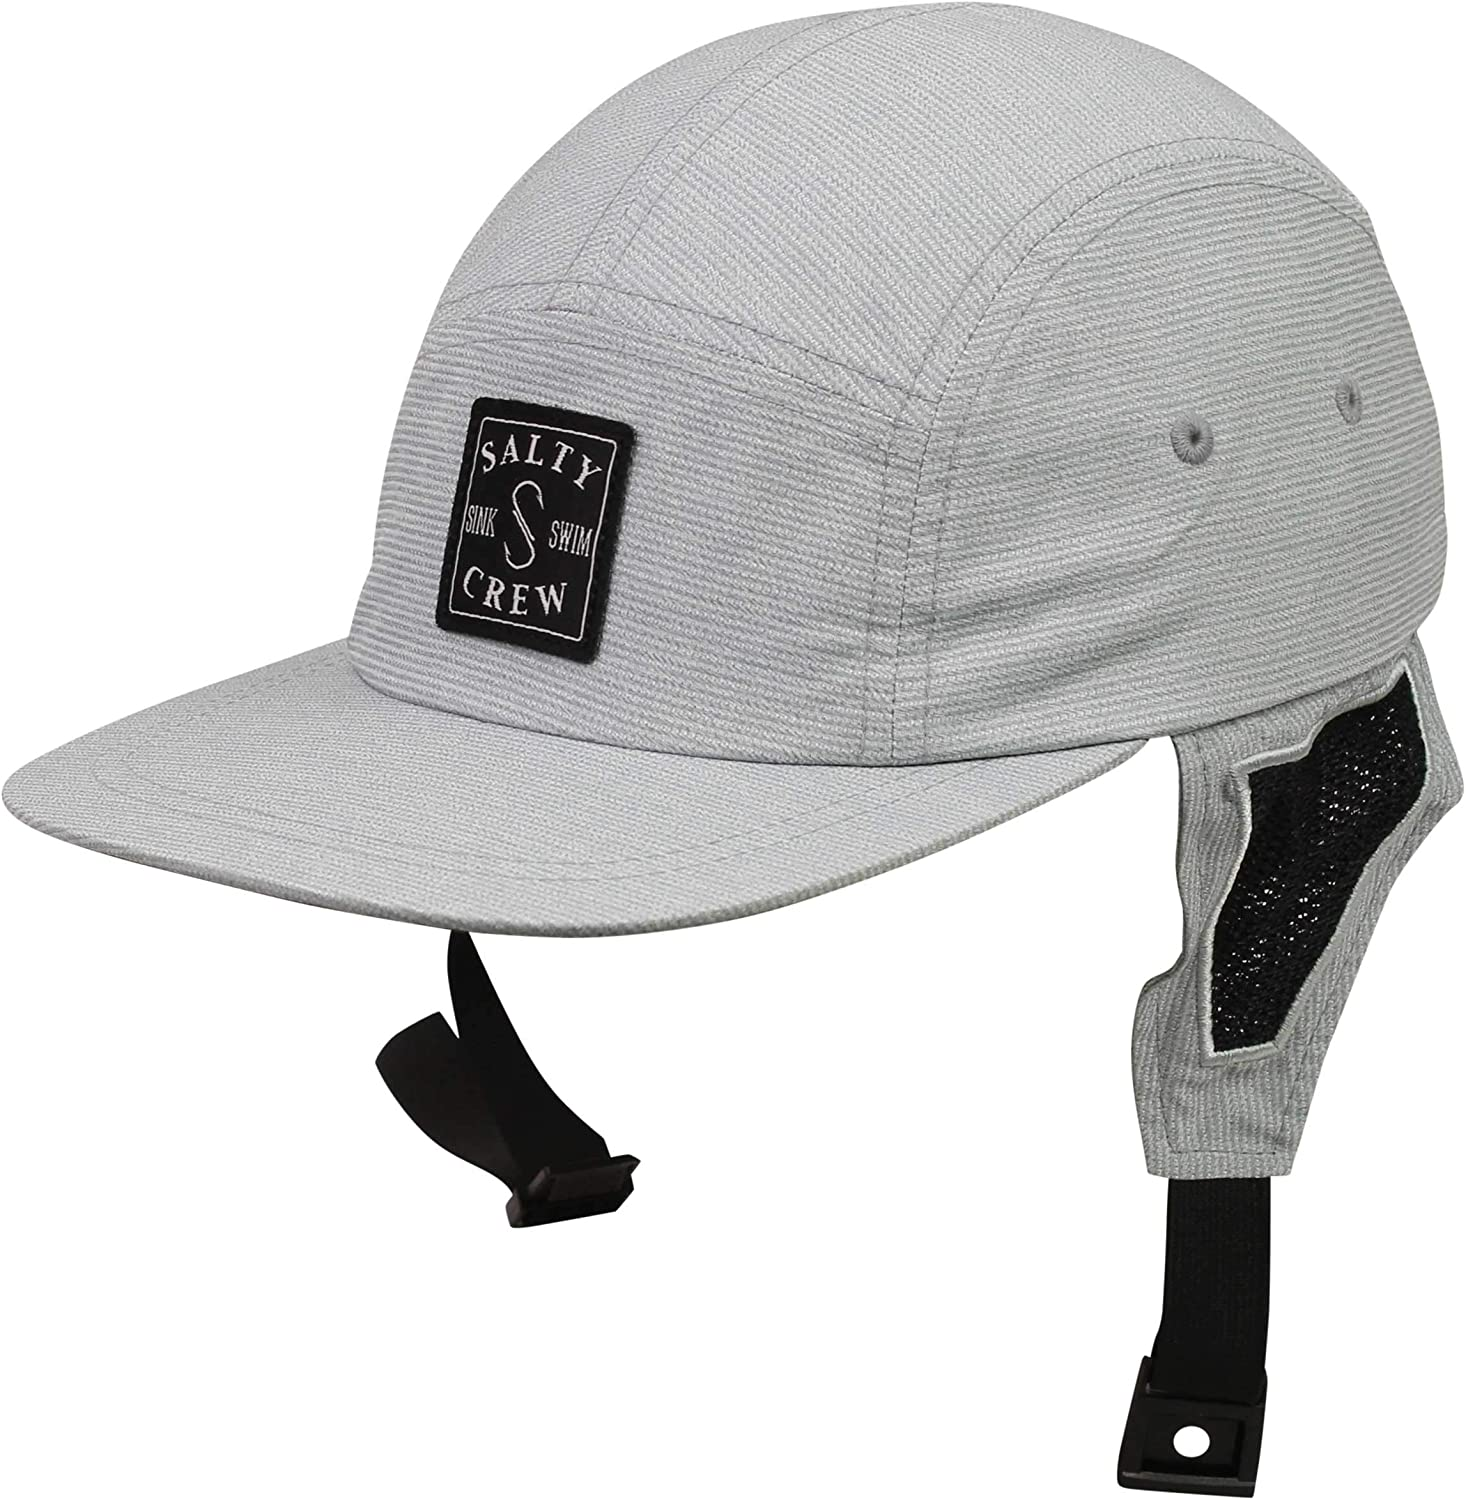 Limited time trial price Salty Crew Some reservation Sport Men's